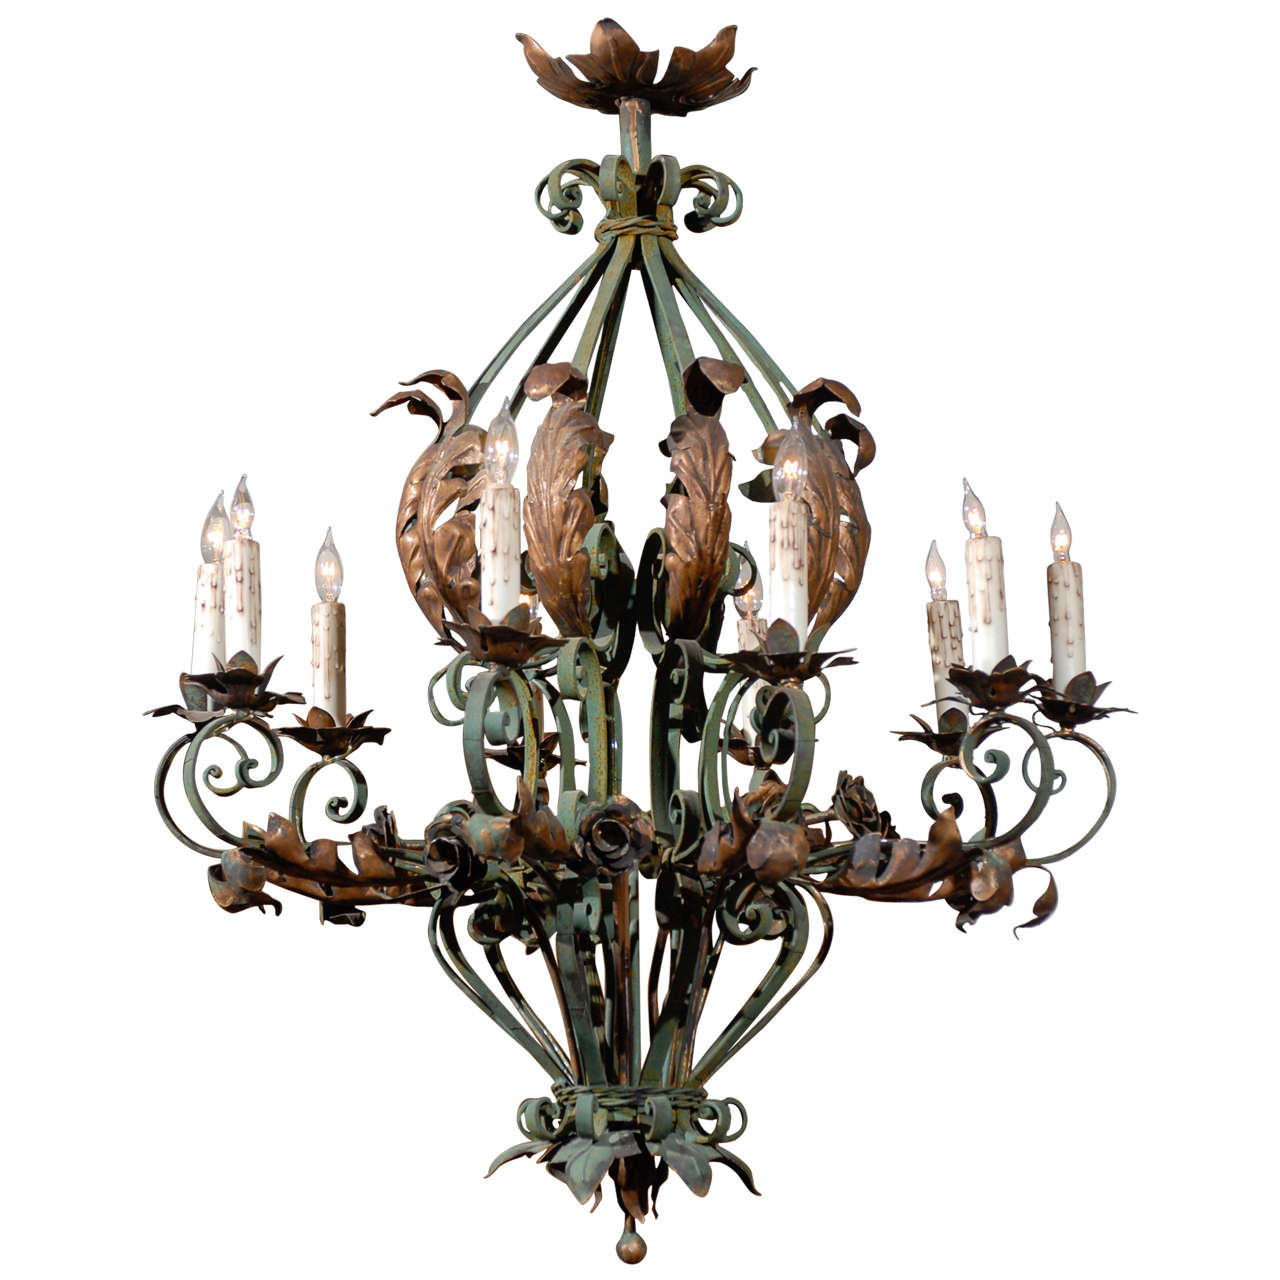 Large french rococo green painted iron and gilt tole chandelier for large french rococo green painted iron and gilt tole chandelier for sale arubaitofo Choice Image